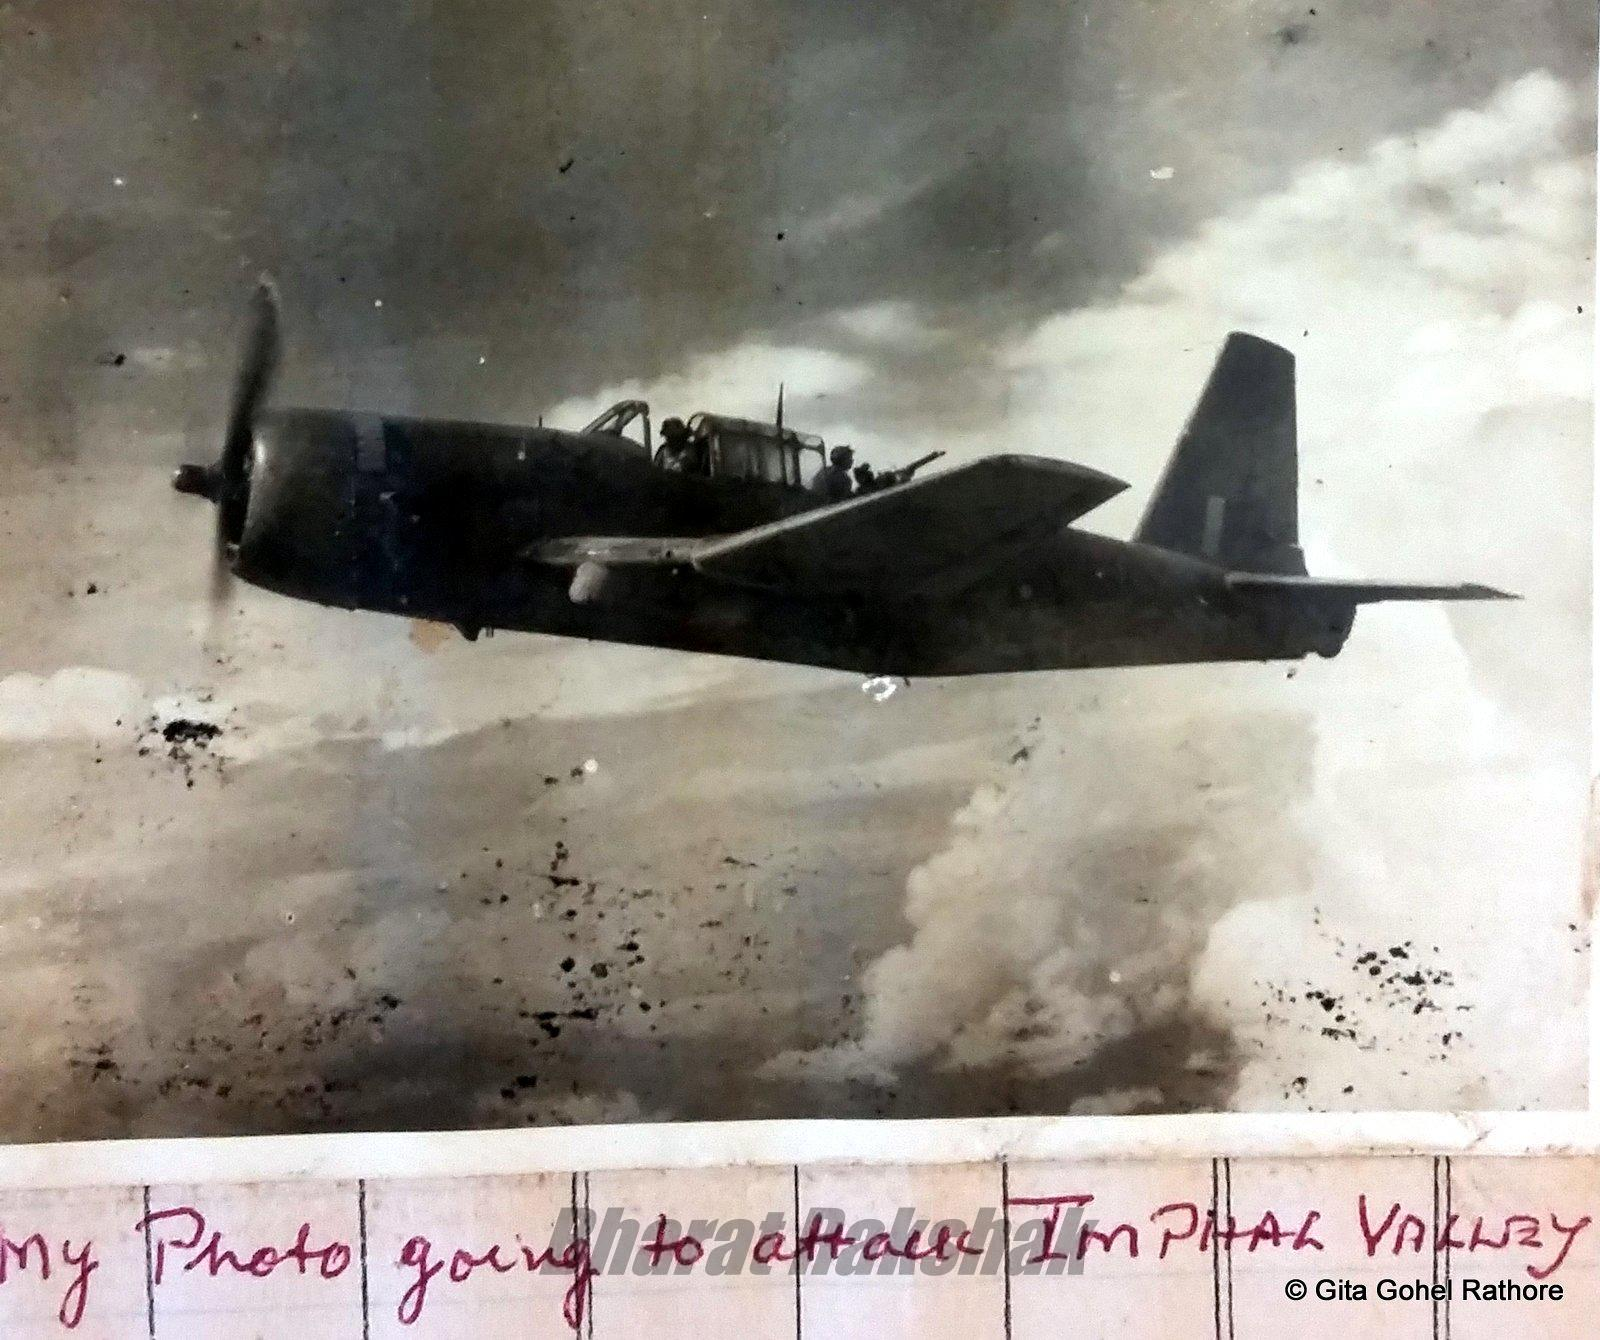 Over the Imphal Valley - Flying a Vengeance with No.7 Squadron